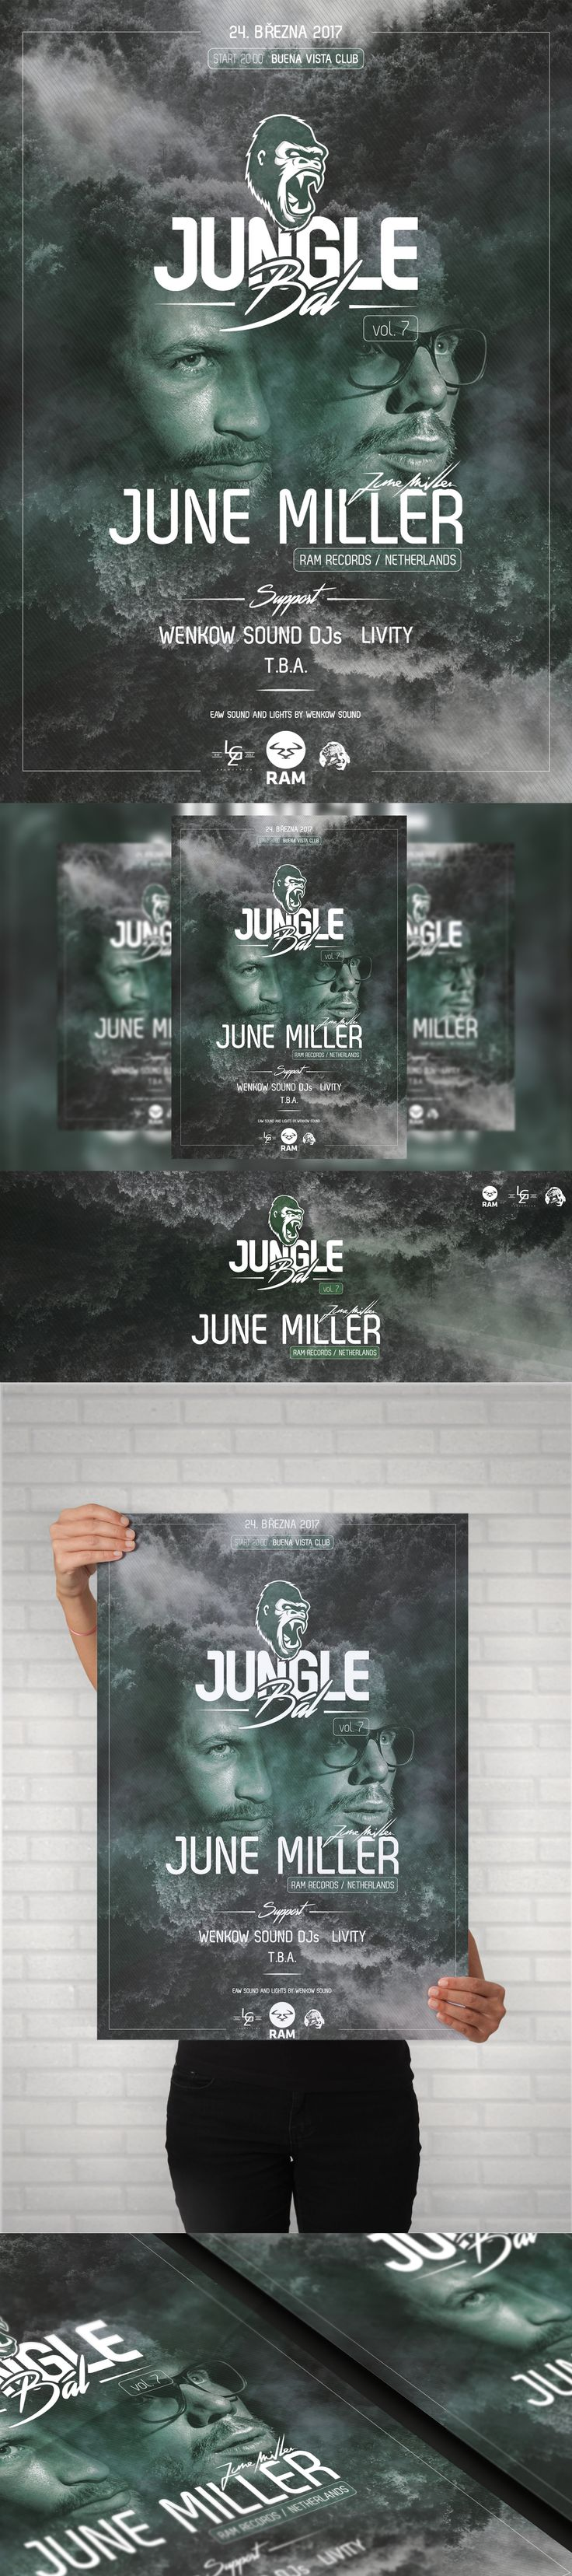 Jungle Bál (Vol. 7)  Electronic music event - A4 Poster, Facebook event header and preview. #poster #posterdesign #fbheader #graphicdesign